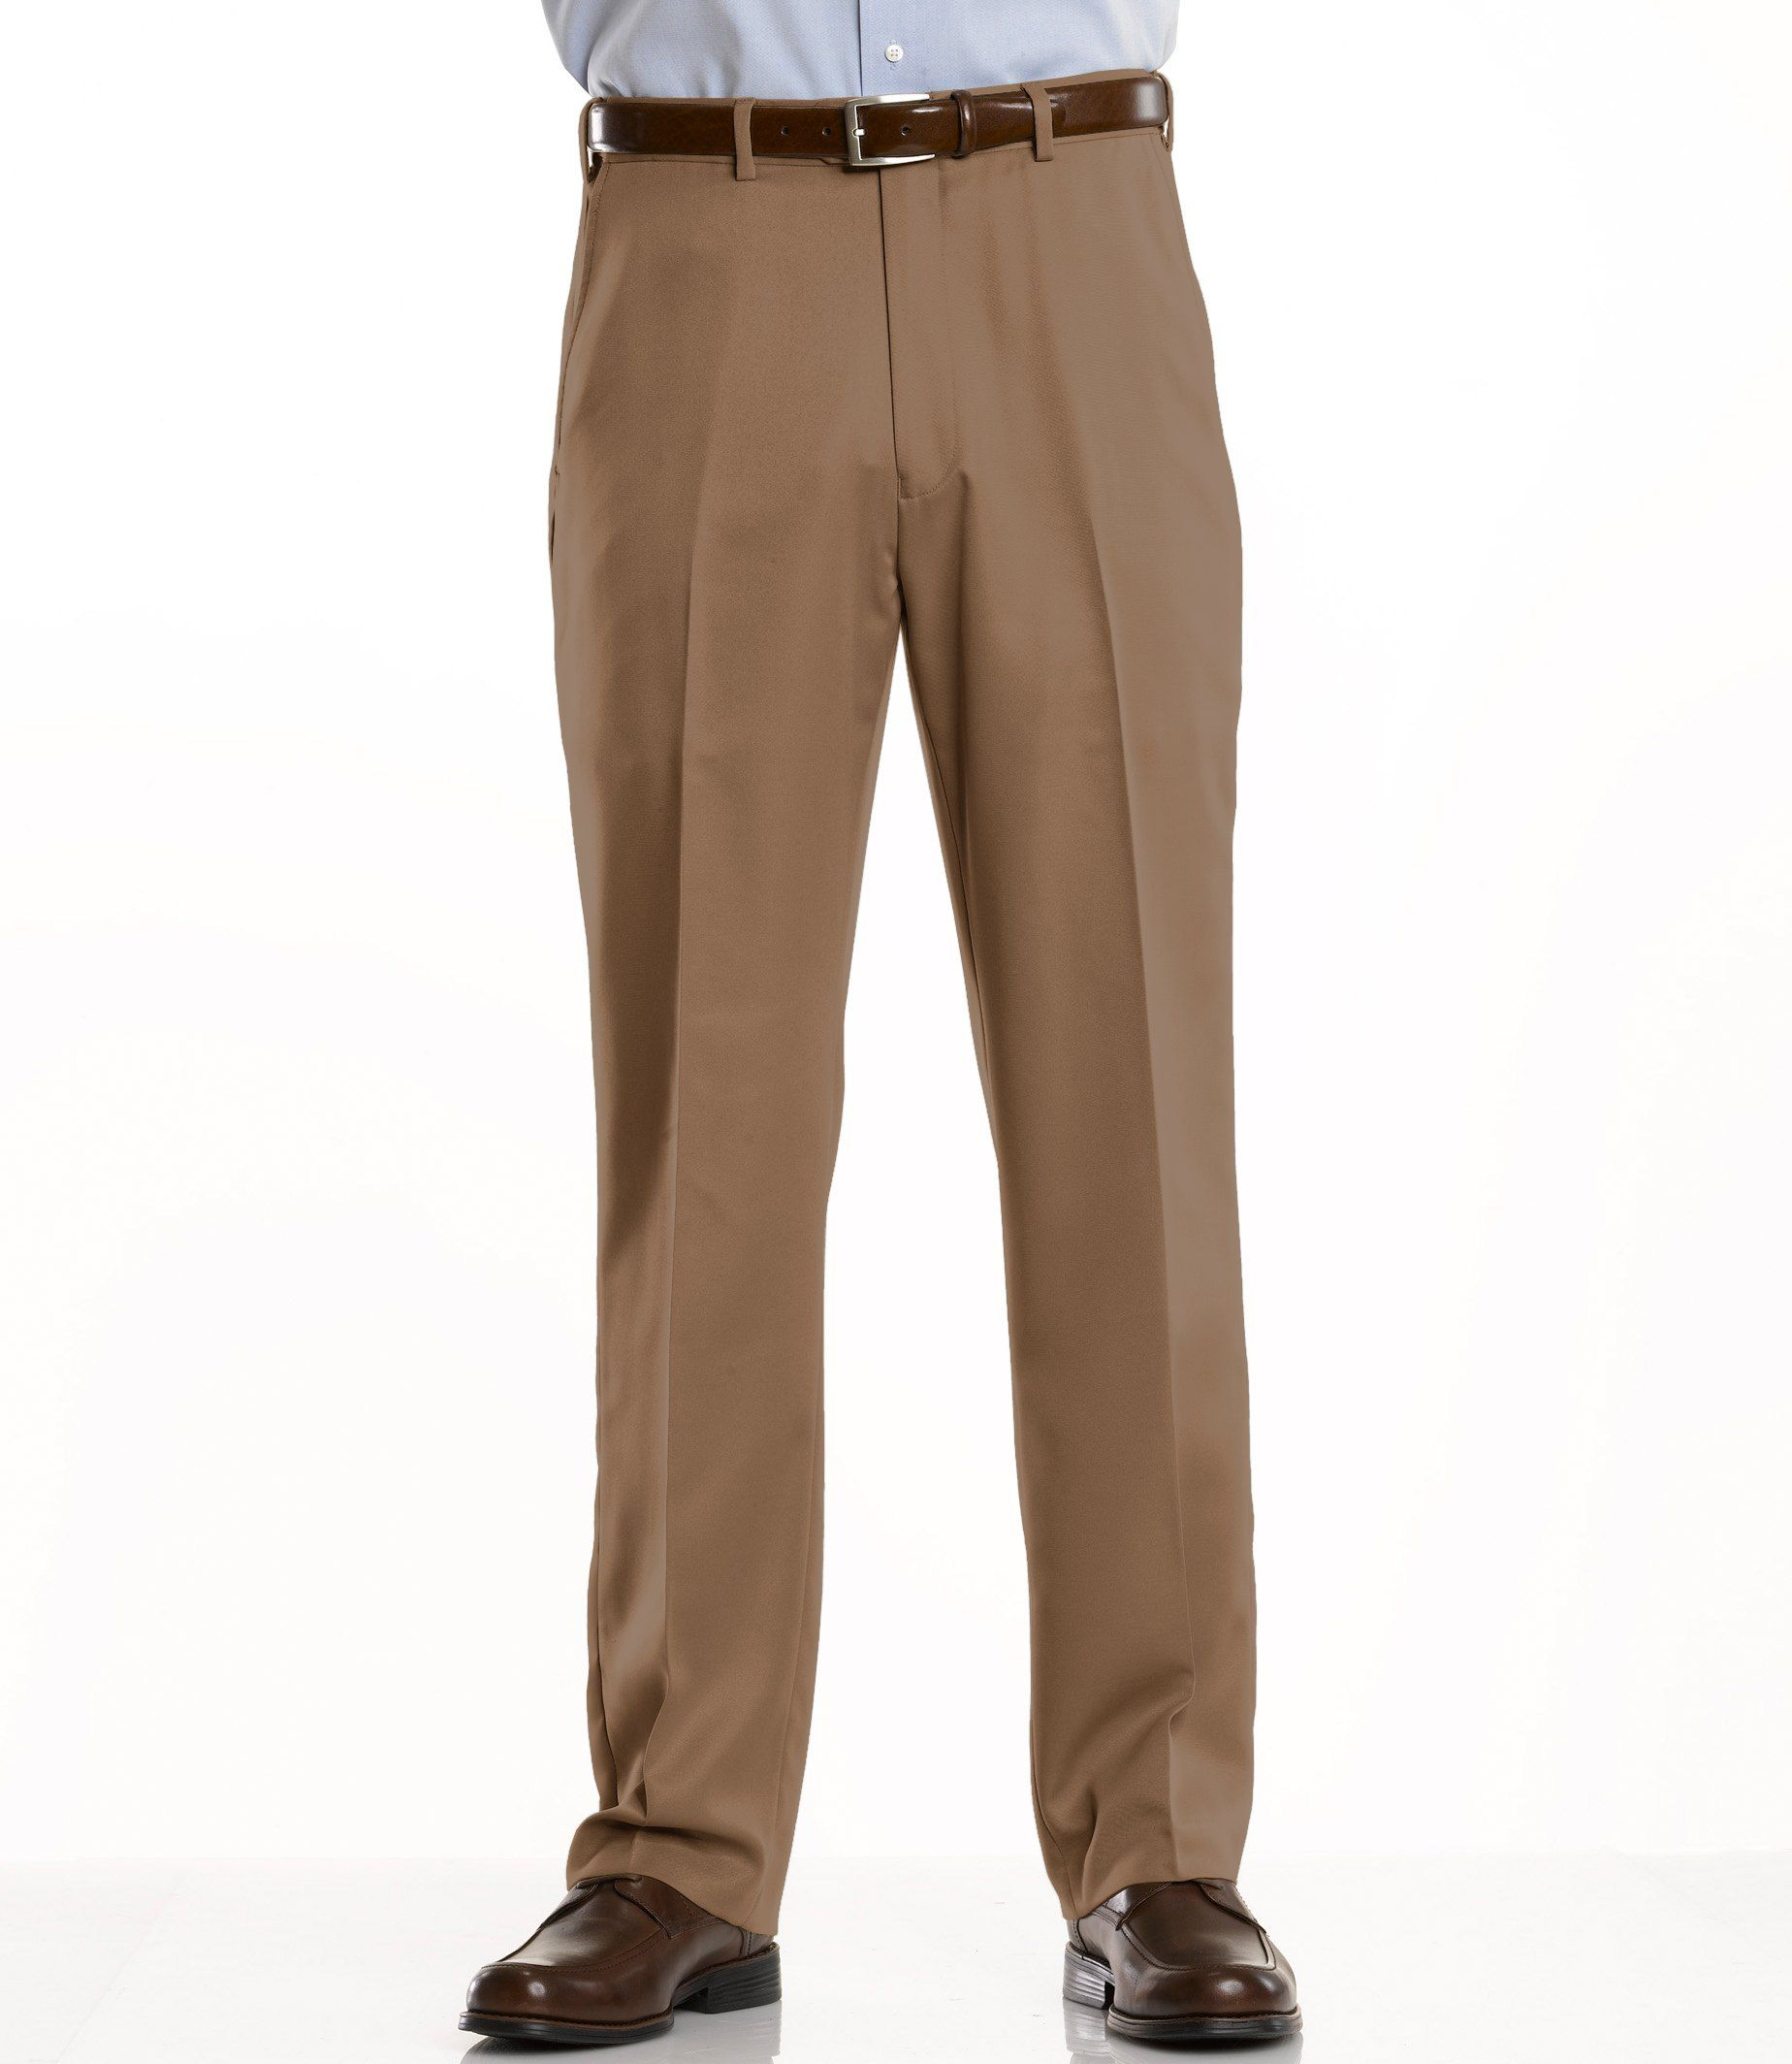 Find the perfect pair of men's pants at Kohl's. Featuring your favorite brands and styles, our selection of men's slacks has just what you need! Stay on trend with men's black joggers. For everyday wear, Dockers pants for men are the ideal choice.